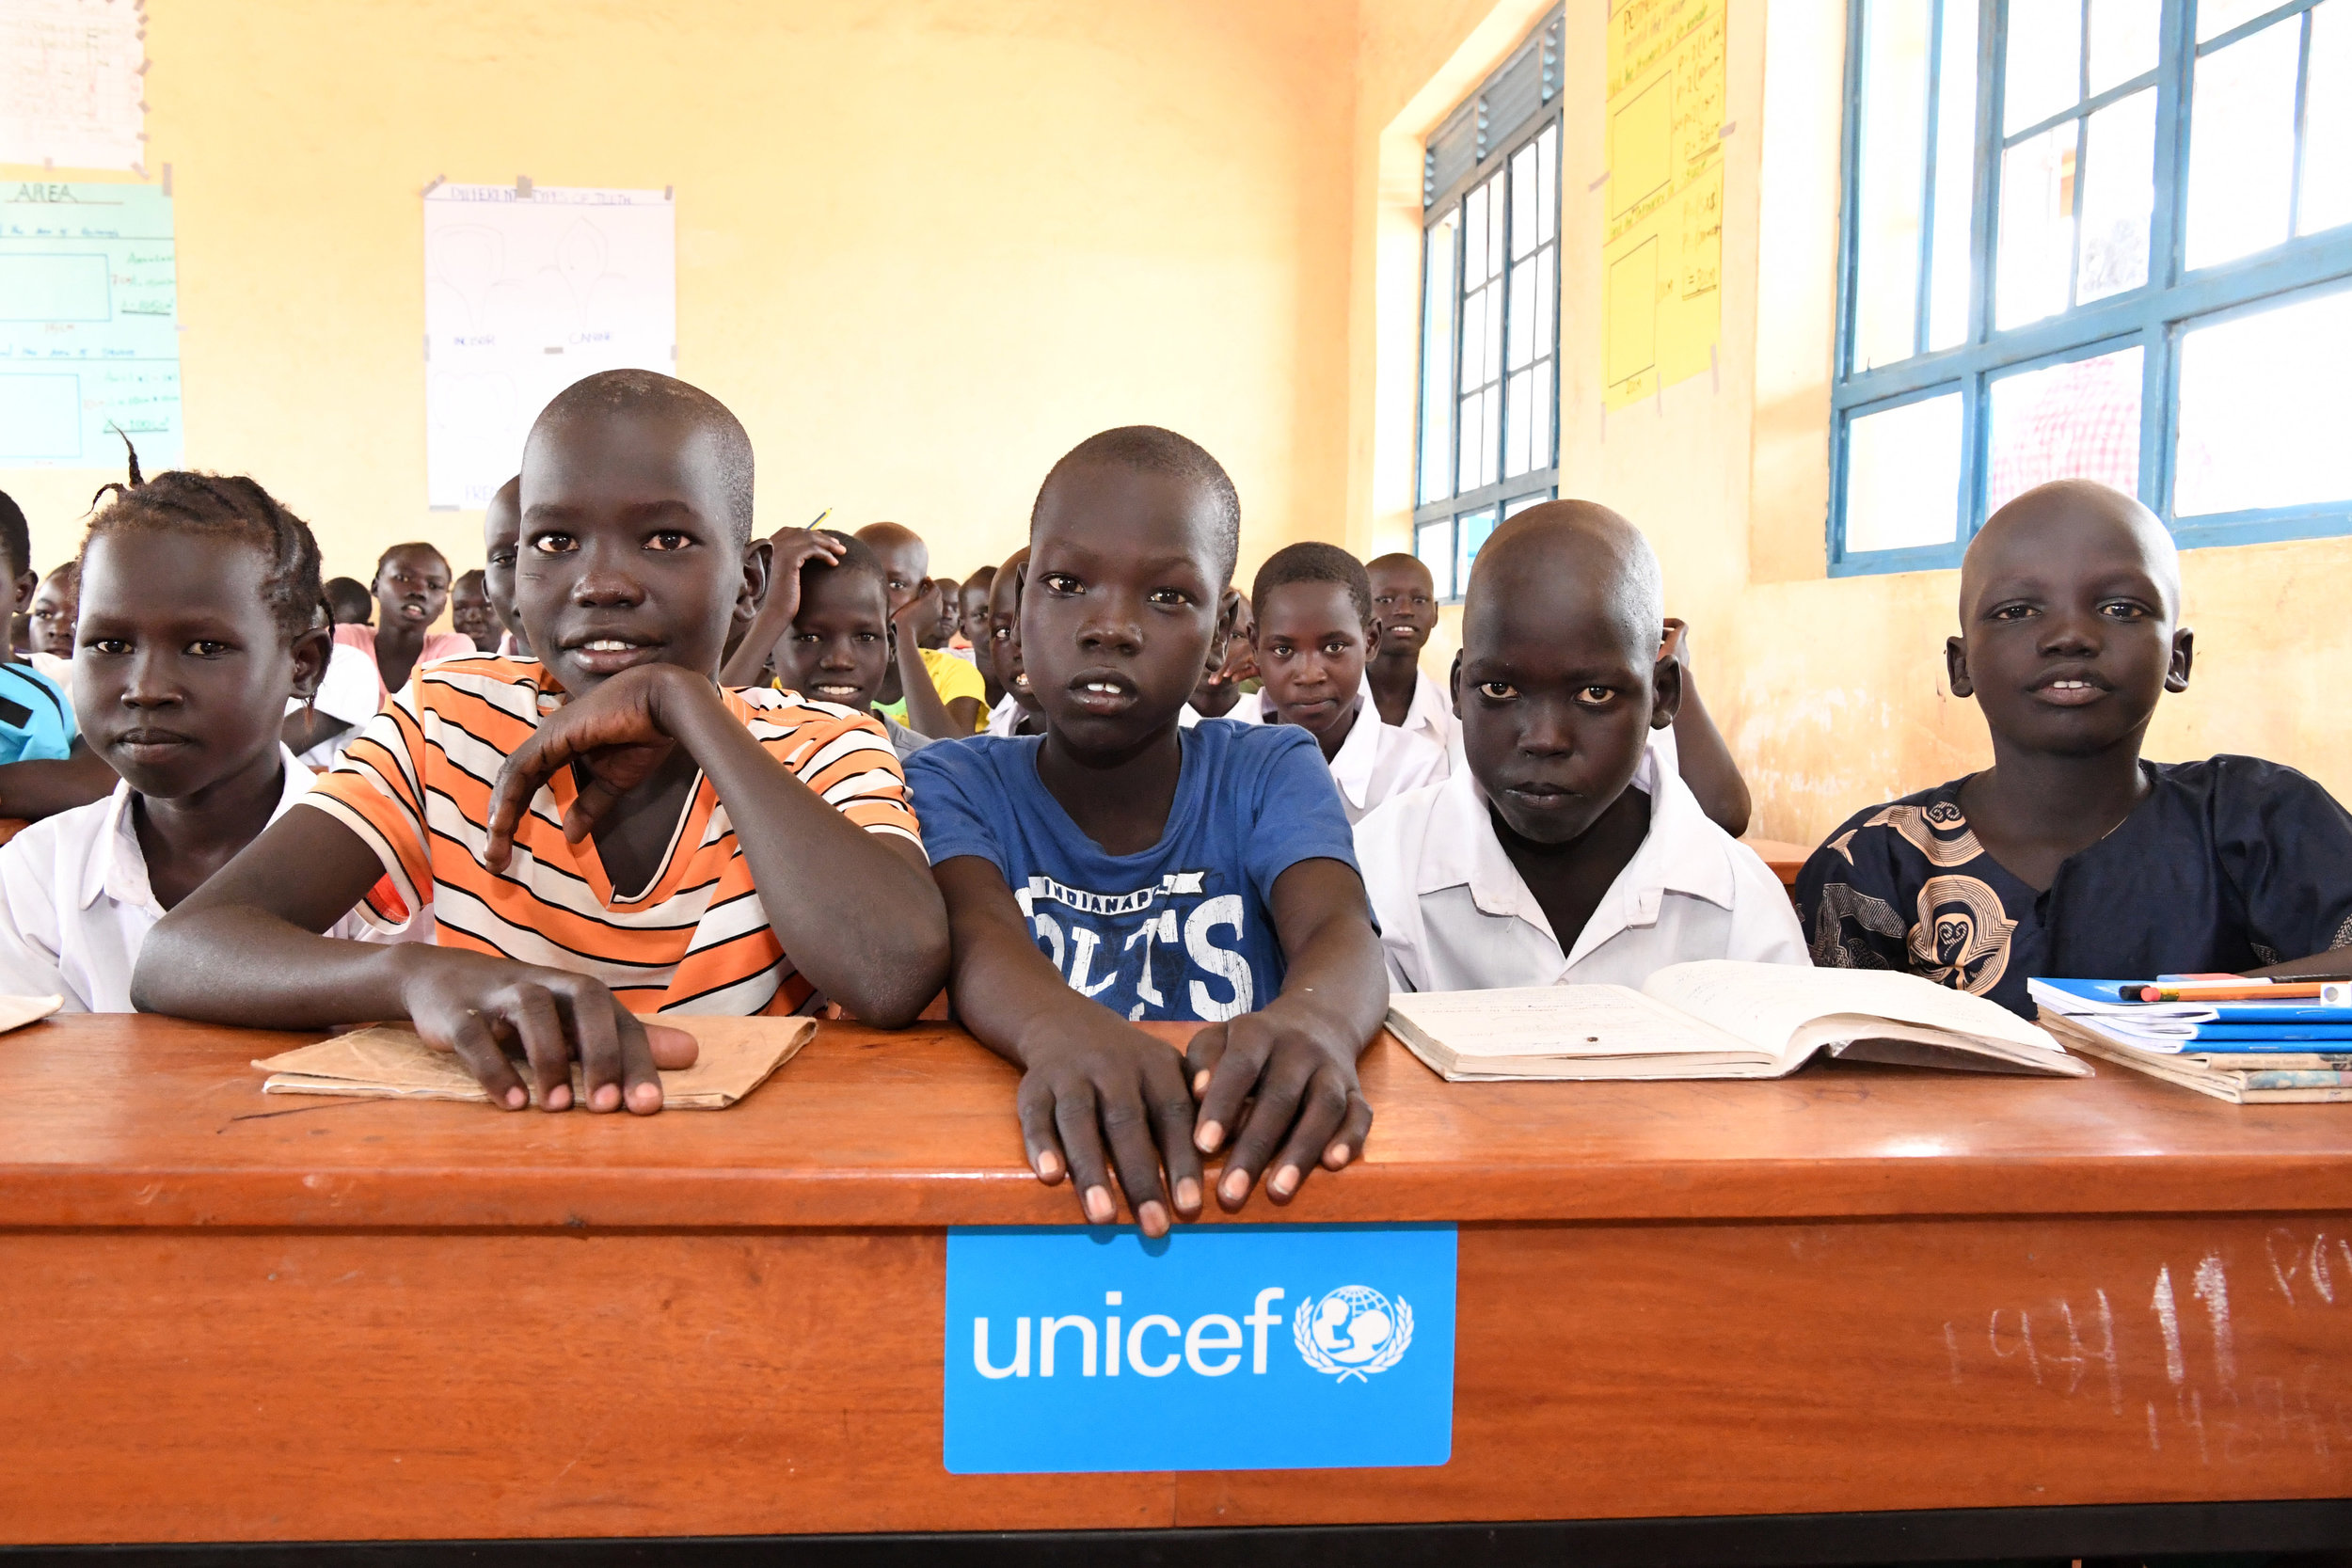 UNICEF has contributed to the construction of the only school in the Kalobeyei village along with the recruitment, financing and training of teachers.